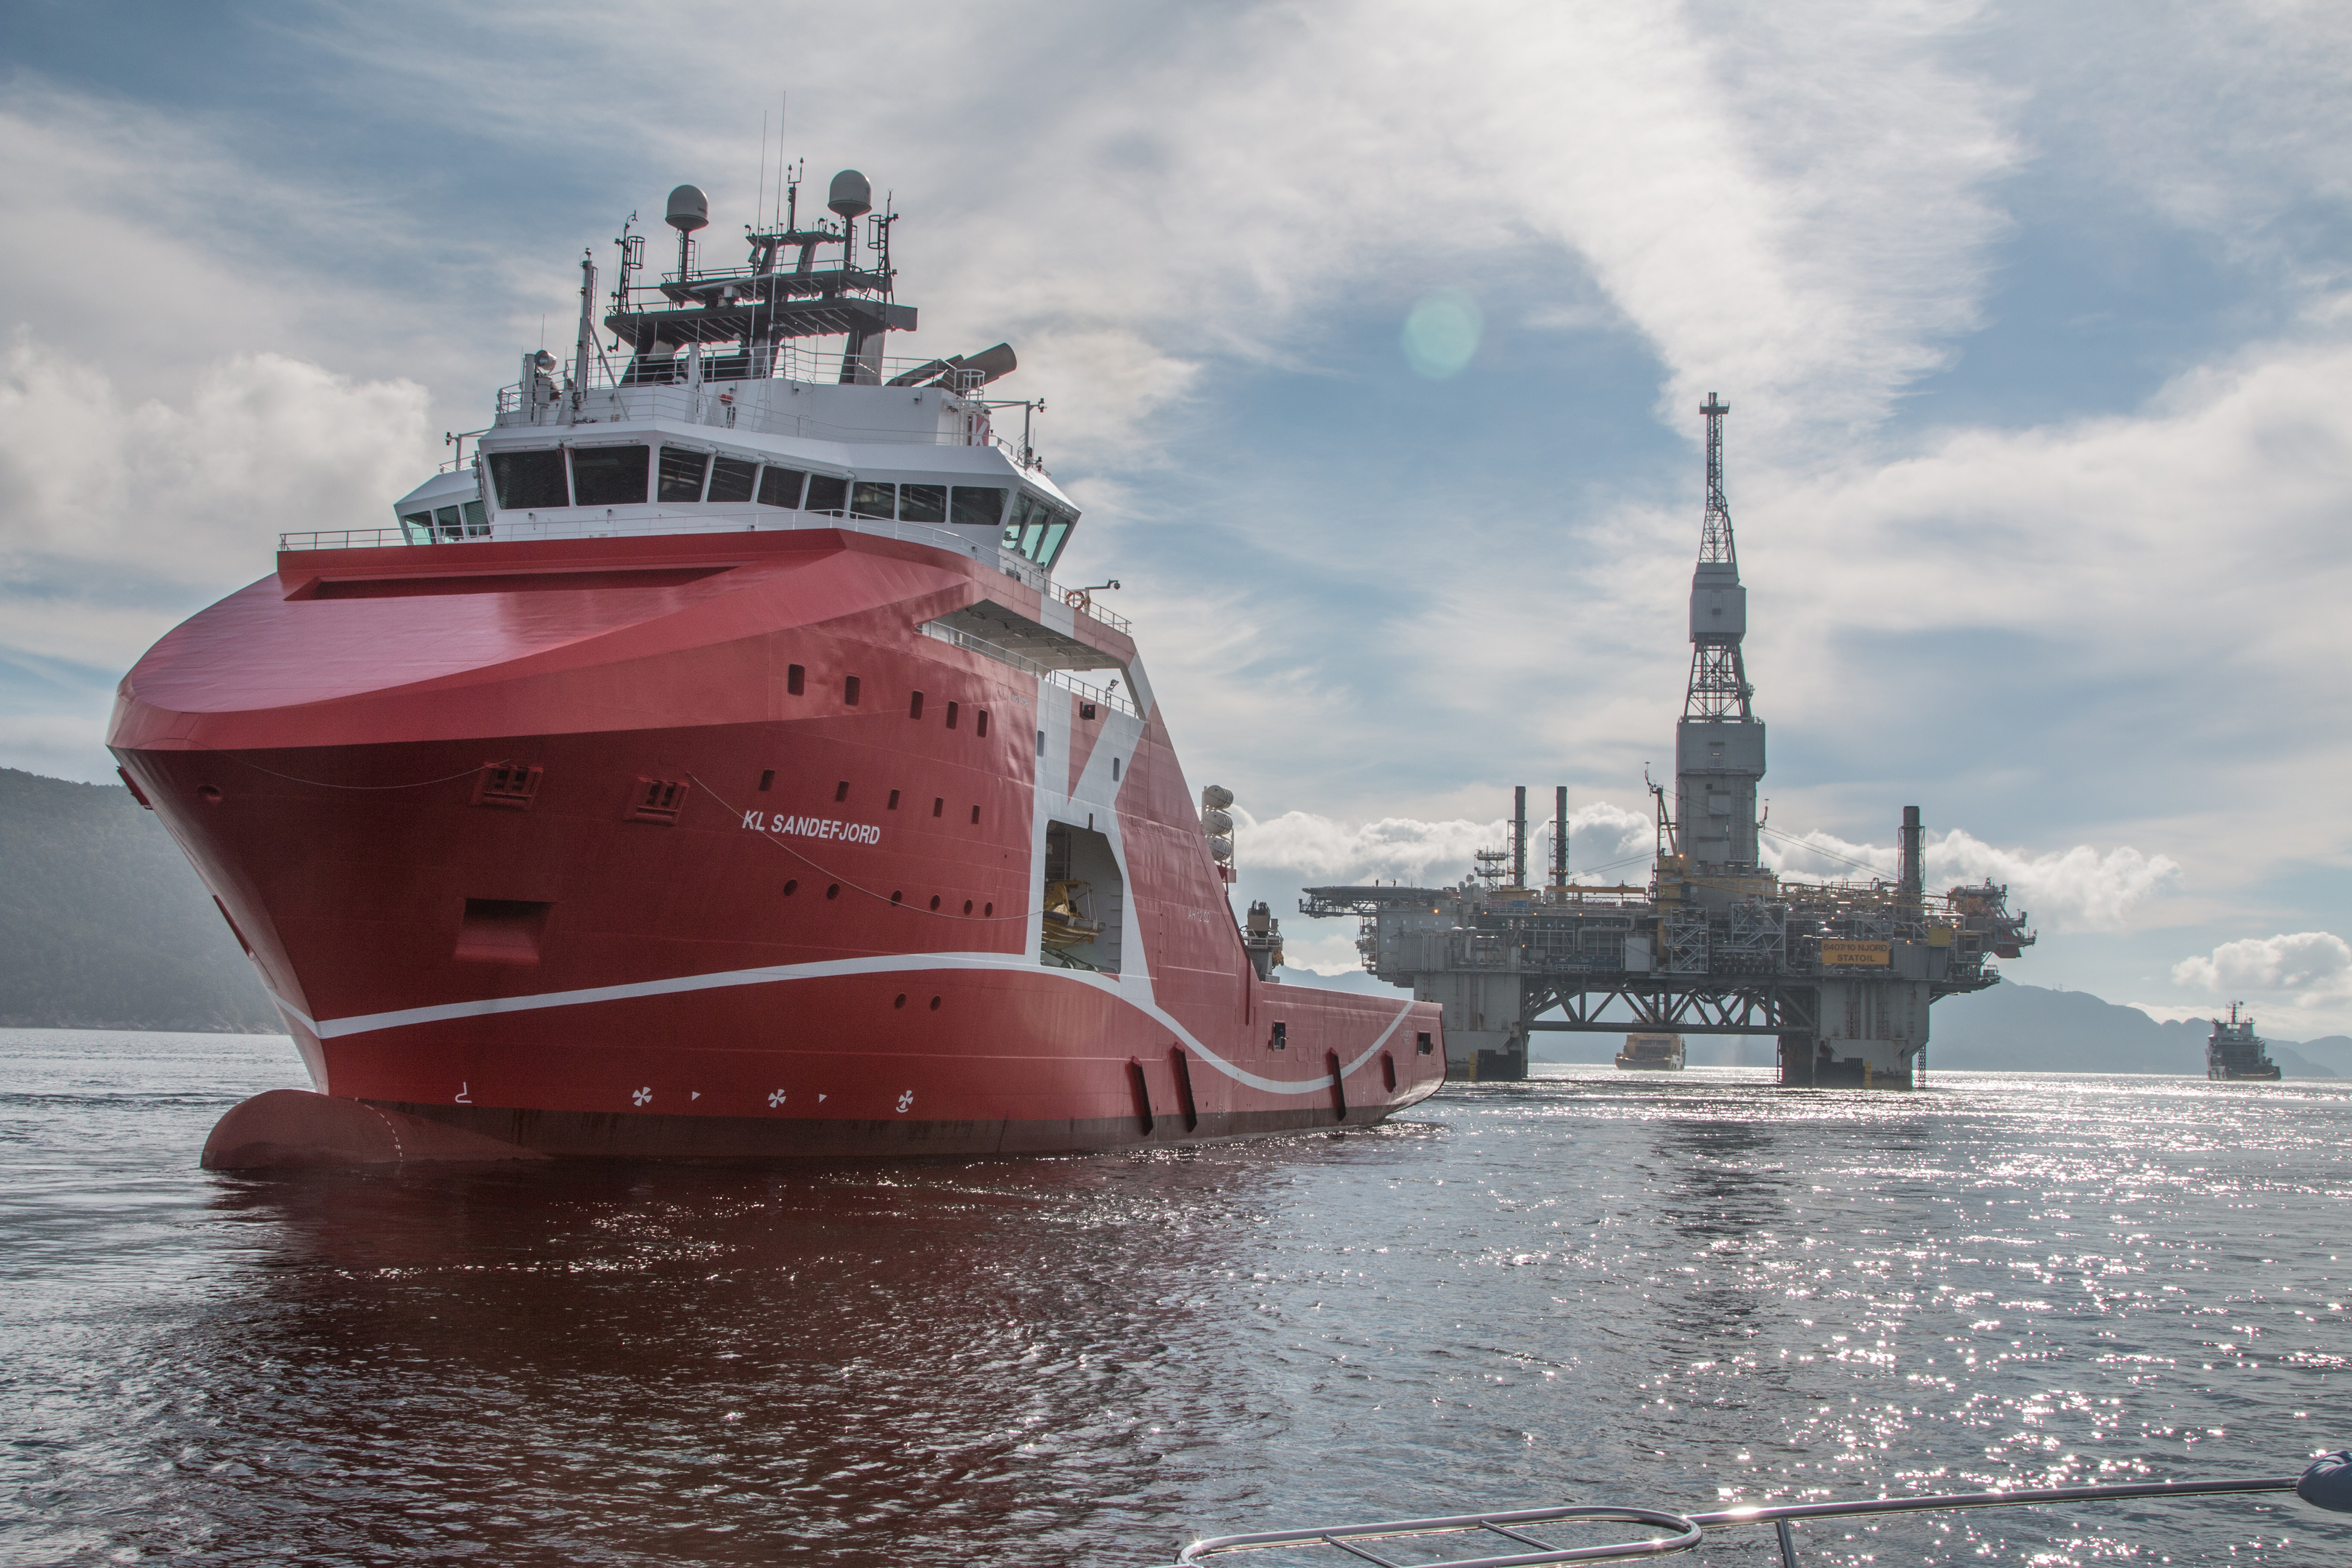 Statoil's Njord A platform being towed to a yard.